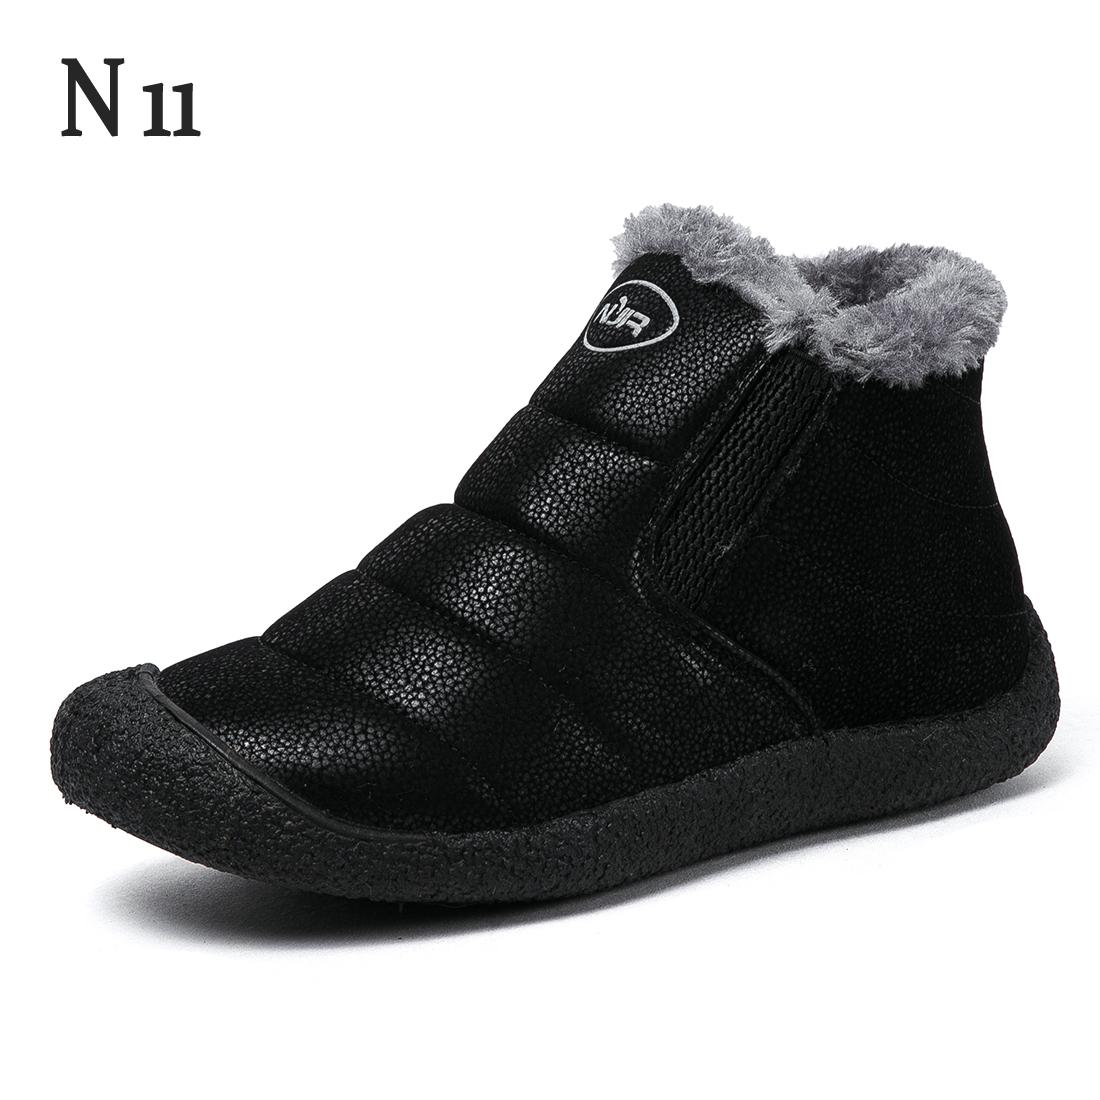 N11 New Fashion Couple Unisex Boot Fashion Women's Winter Snow Boots Keep Warm Boots Plush Ankle Snow Work Shoes Women Boots 2017 cow suede genuine leather female boots all season winter short plush to keep warm ankle boot solid snow boot bota feminina